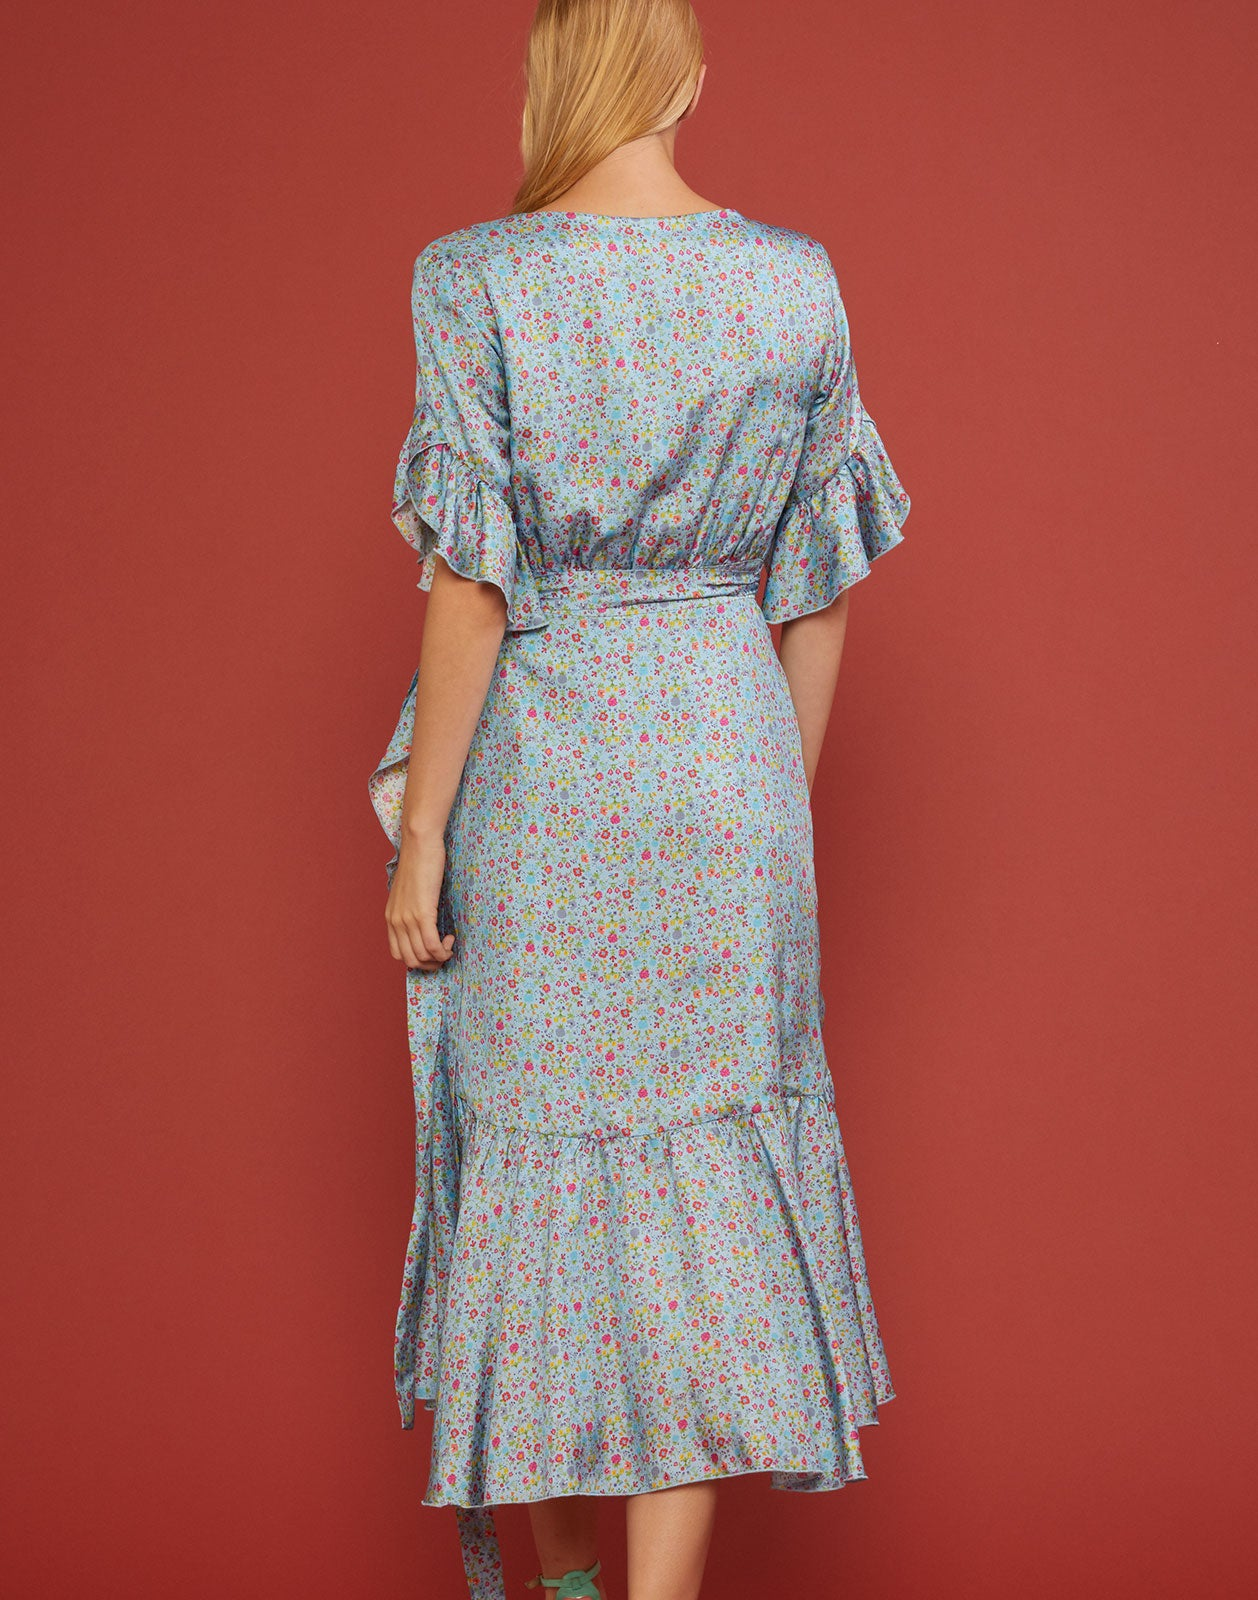 Back view of the Wallflower Sky Floral Wrap Dress in light blue mini floral print.